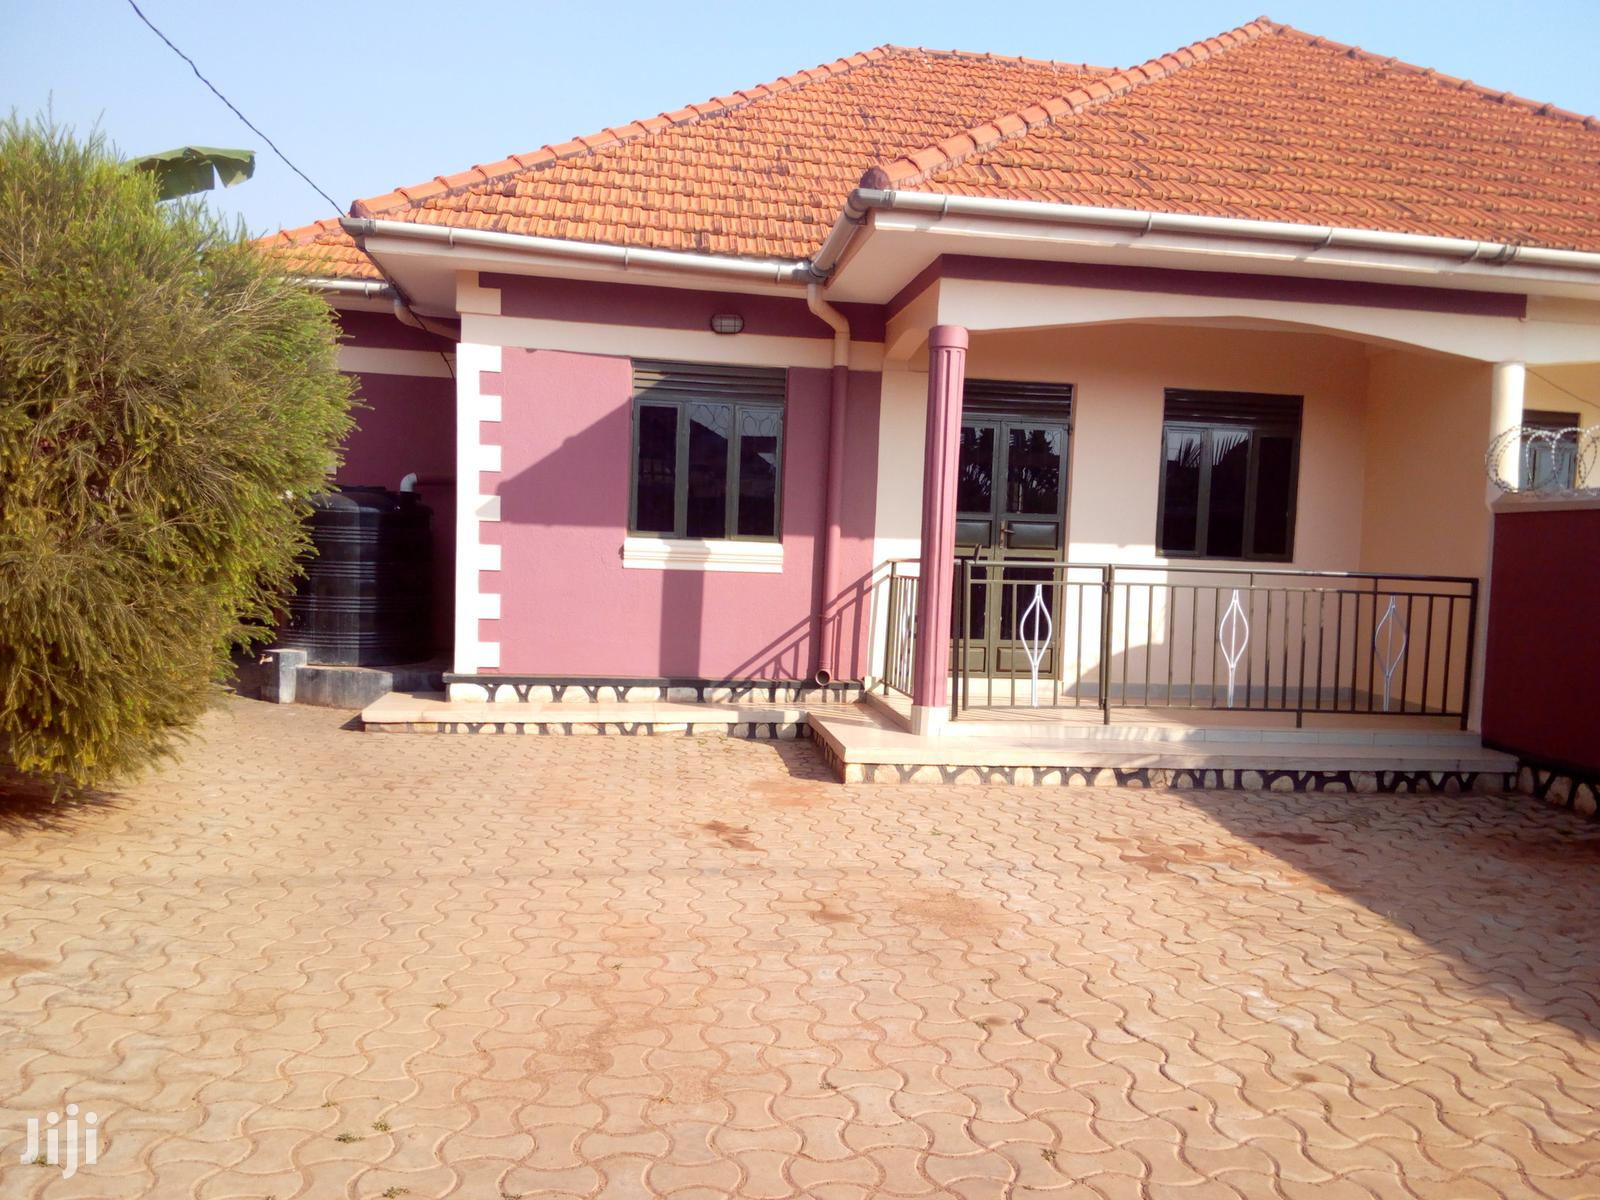 NAMUGONGO Two Bedrooom Two Toilets Standalone House